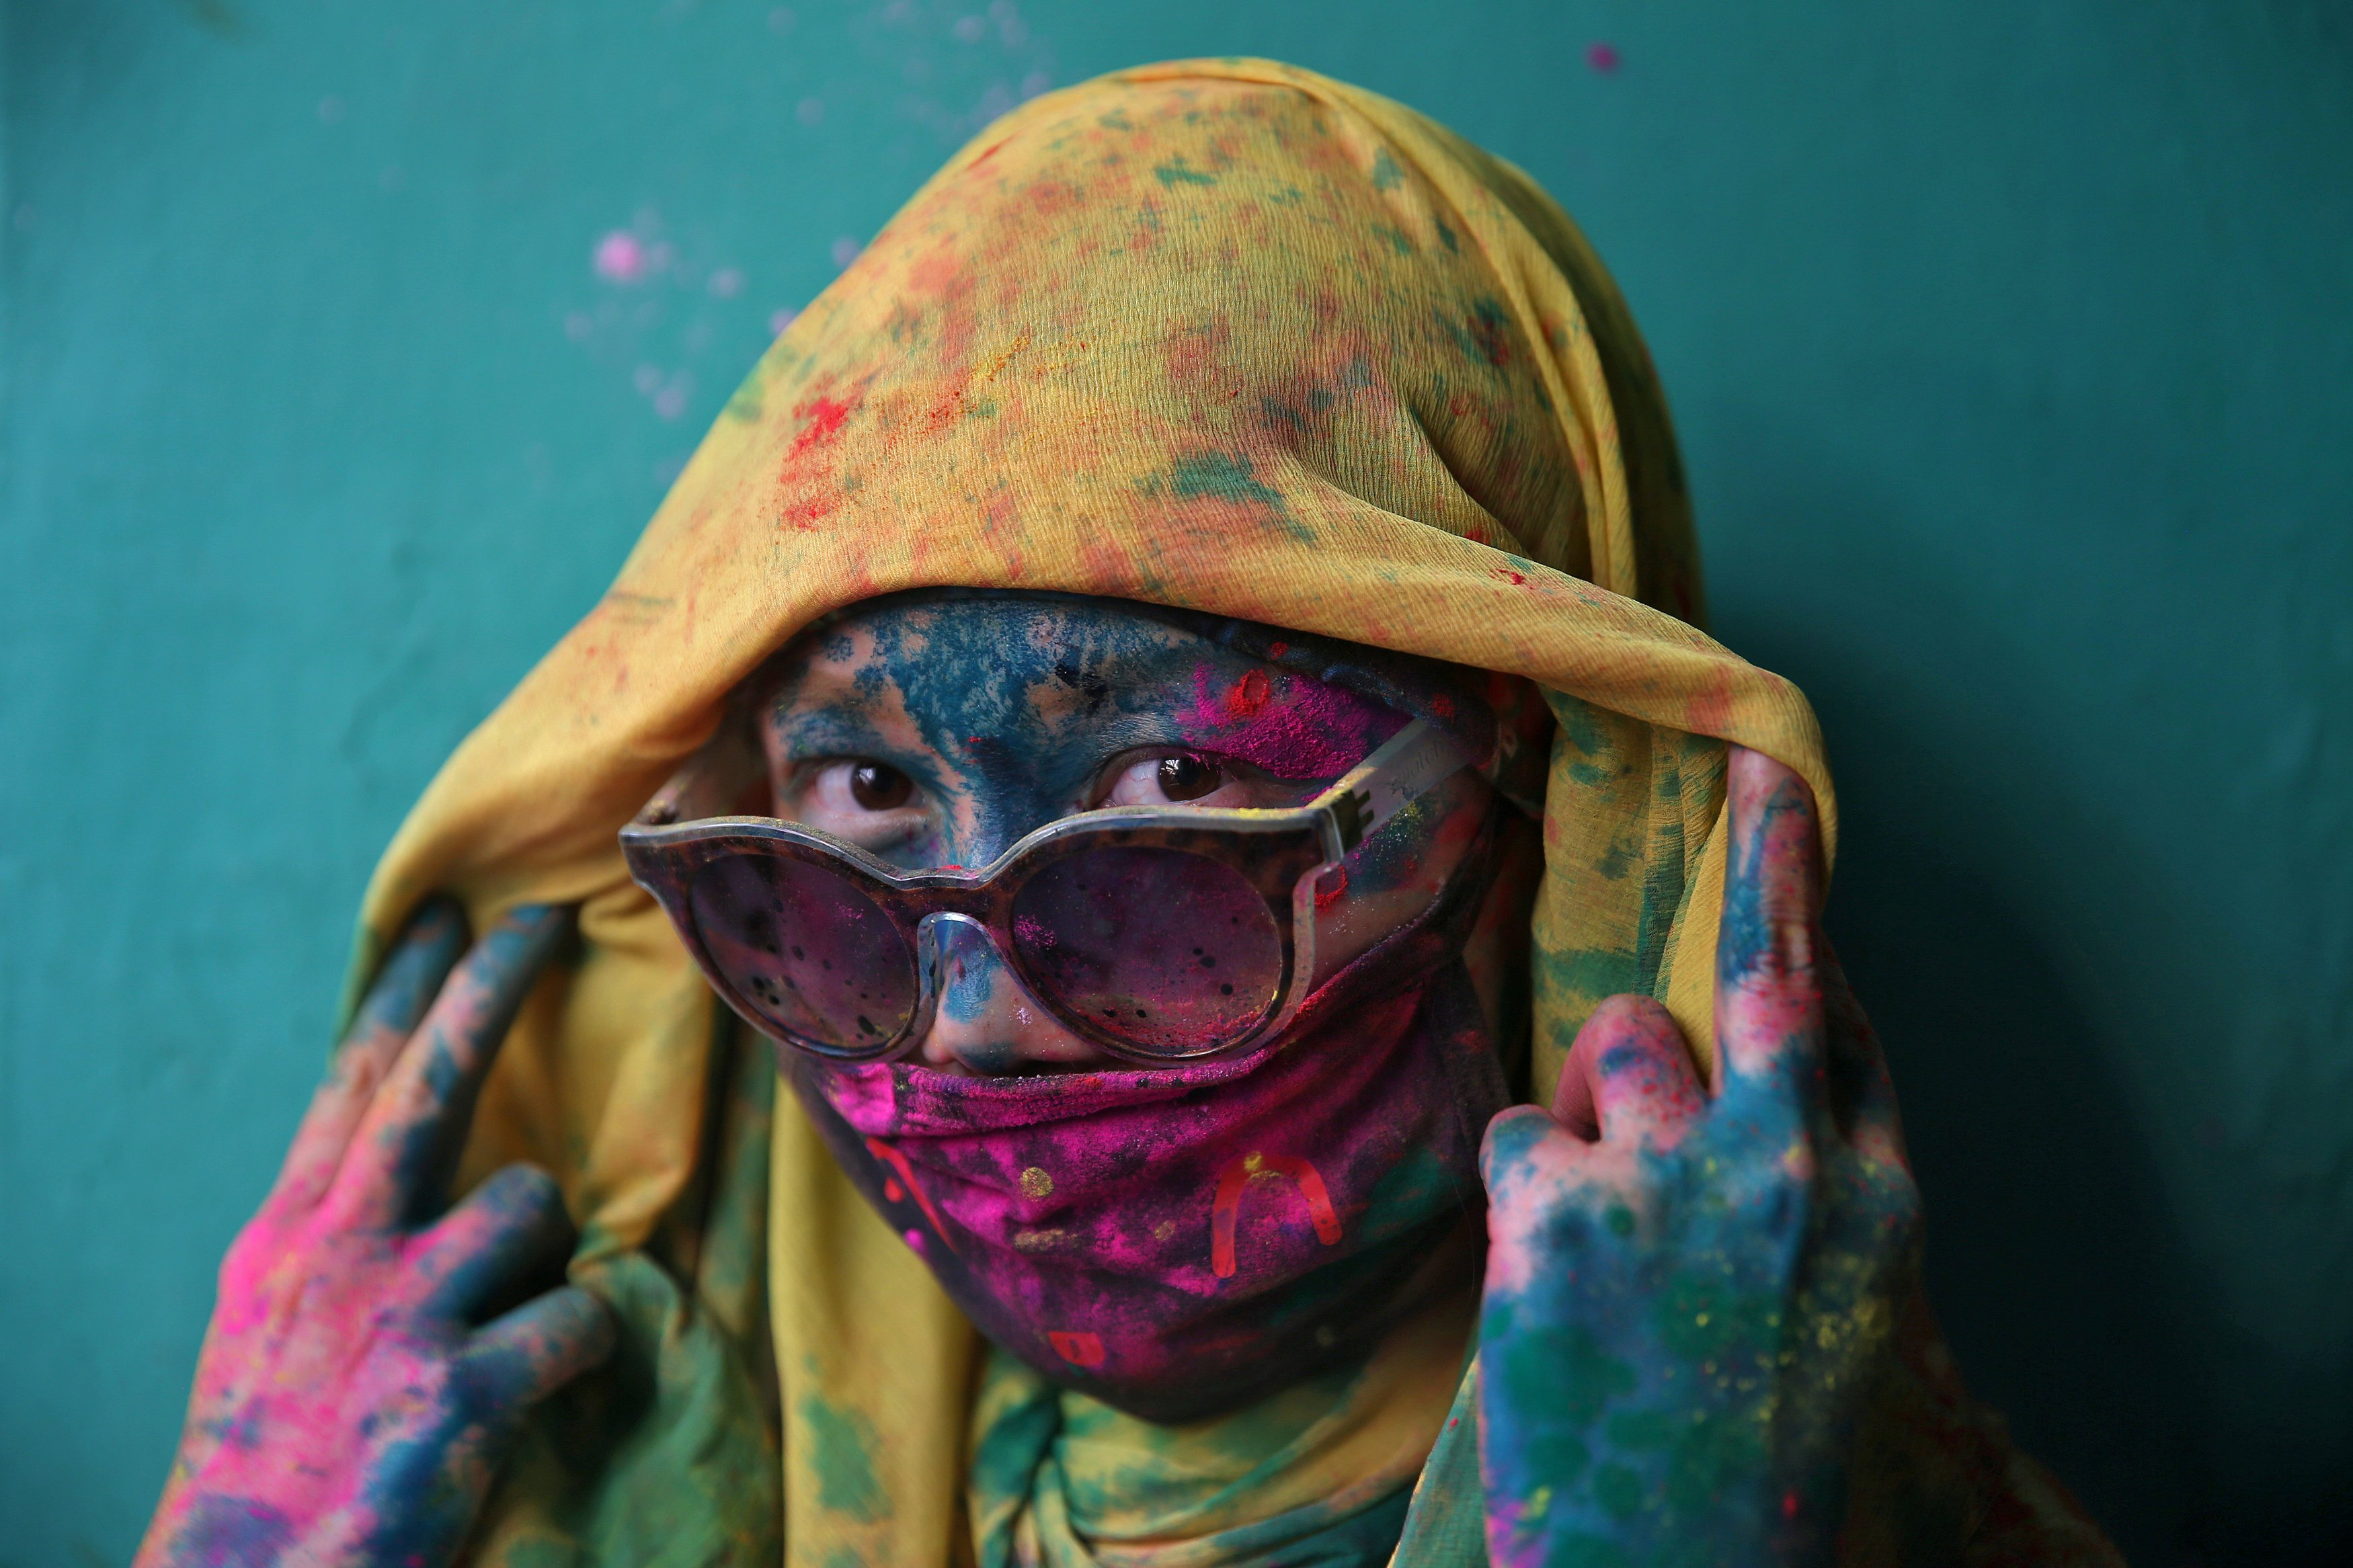 A woman poses for a photograph during Holi celebrations in the town of Barsana in the state of Uttar Pradesh. PHOTO: REUTERS